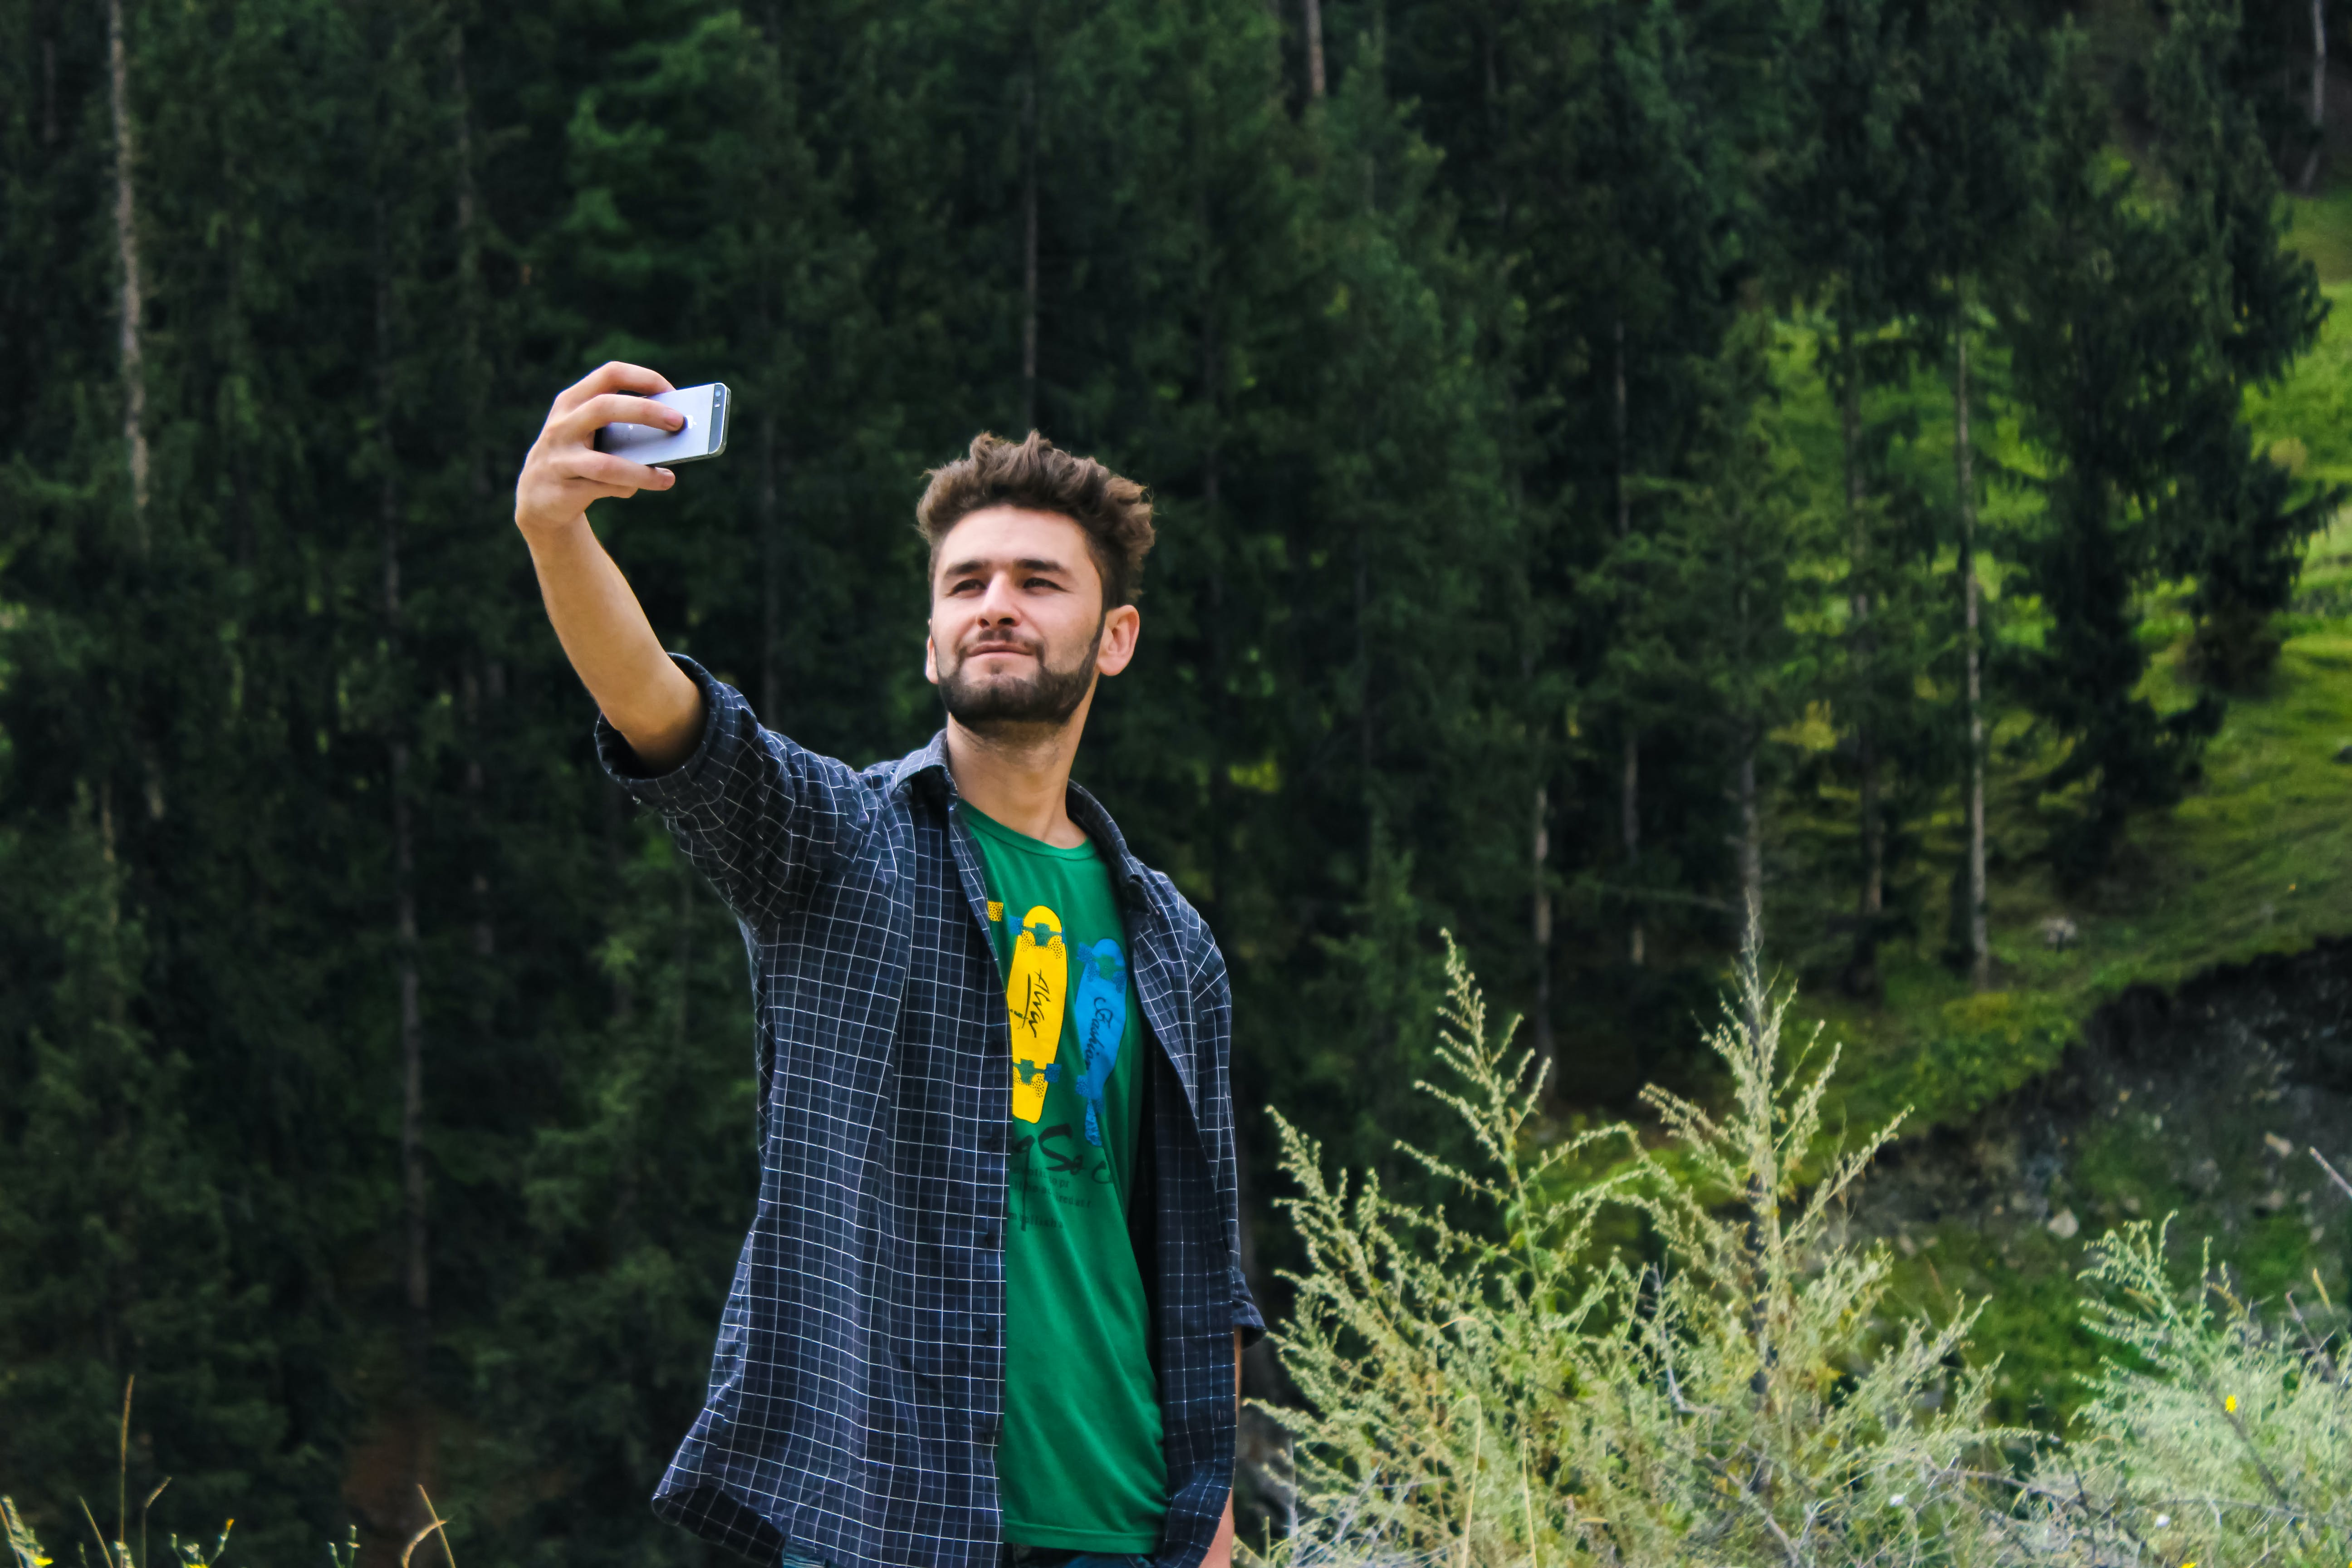 Man in Blue Sports Shirt and Green Top Taking a Selfie Near Green Trees